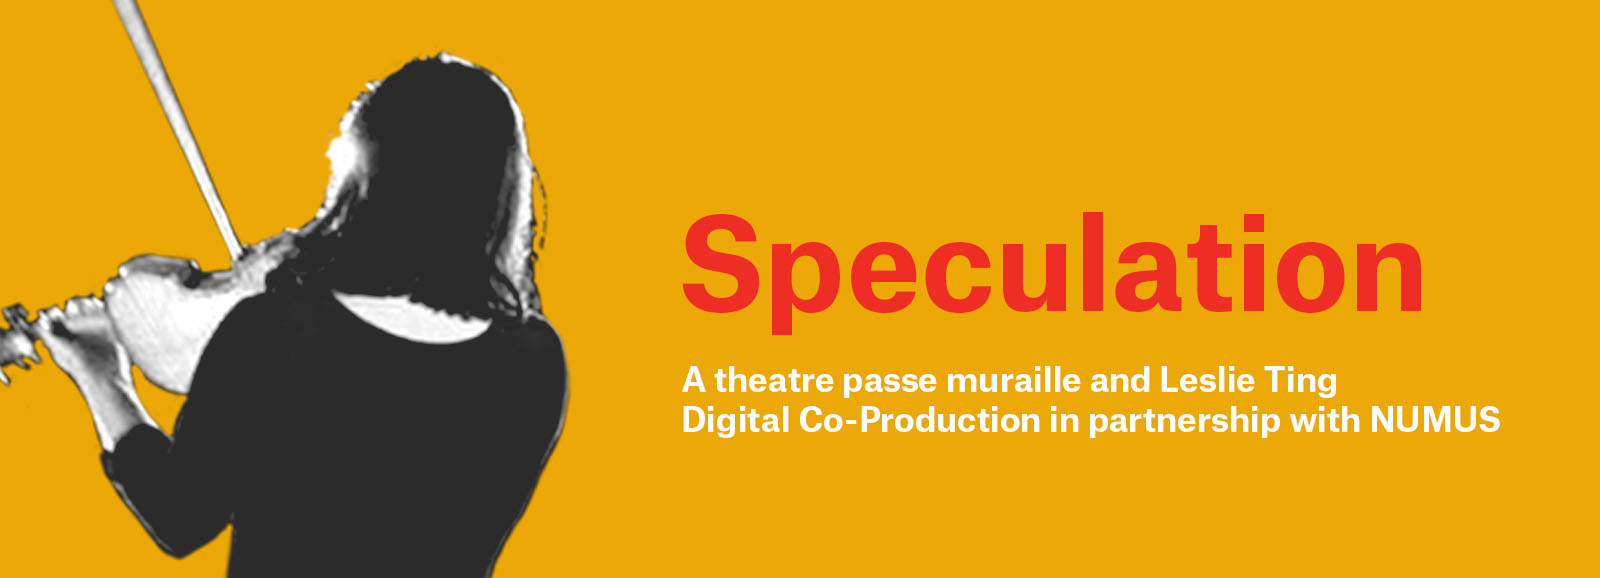 Speculation A Theatre Passe Muraille and Leslie Ting Digital Co-Production in partnership with NUMUS